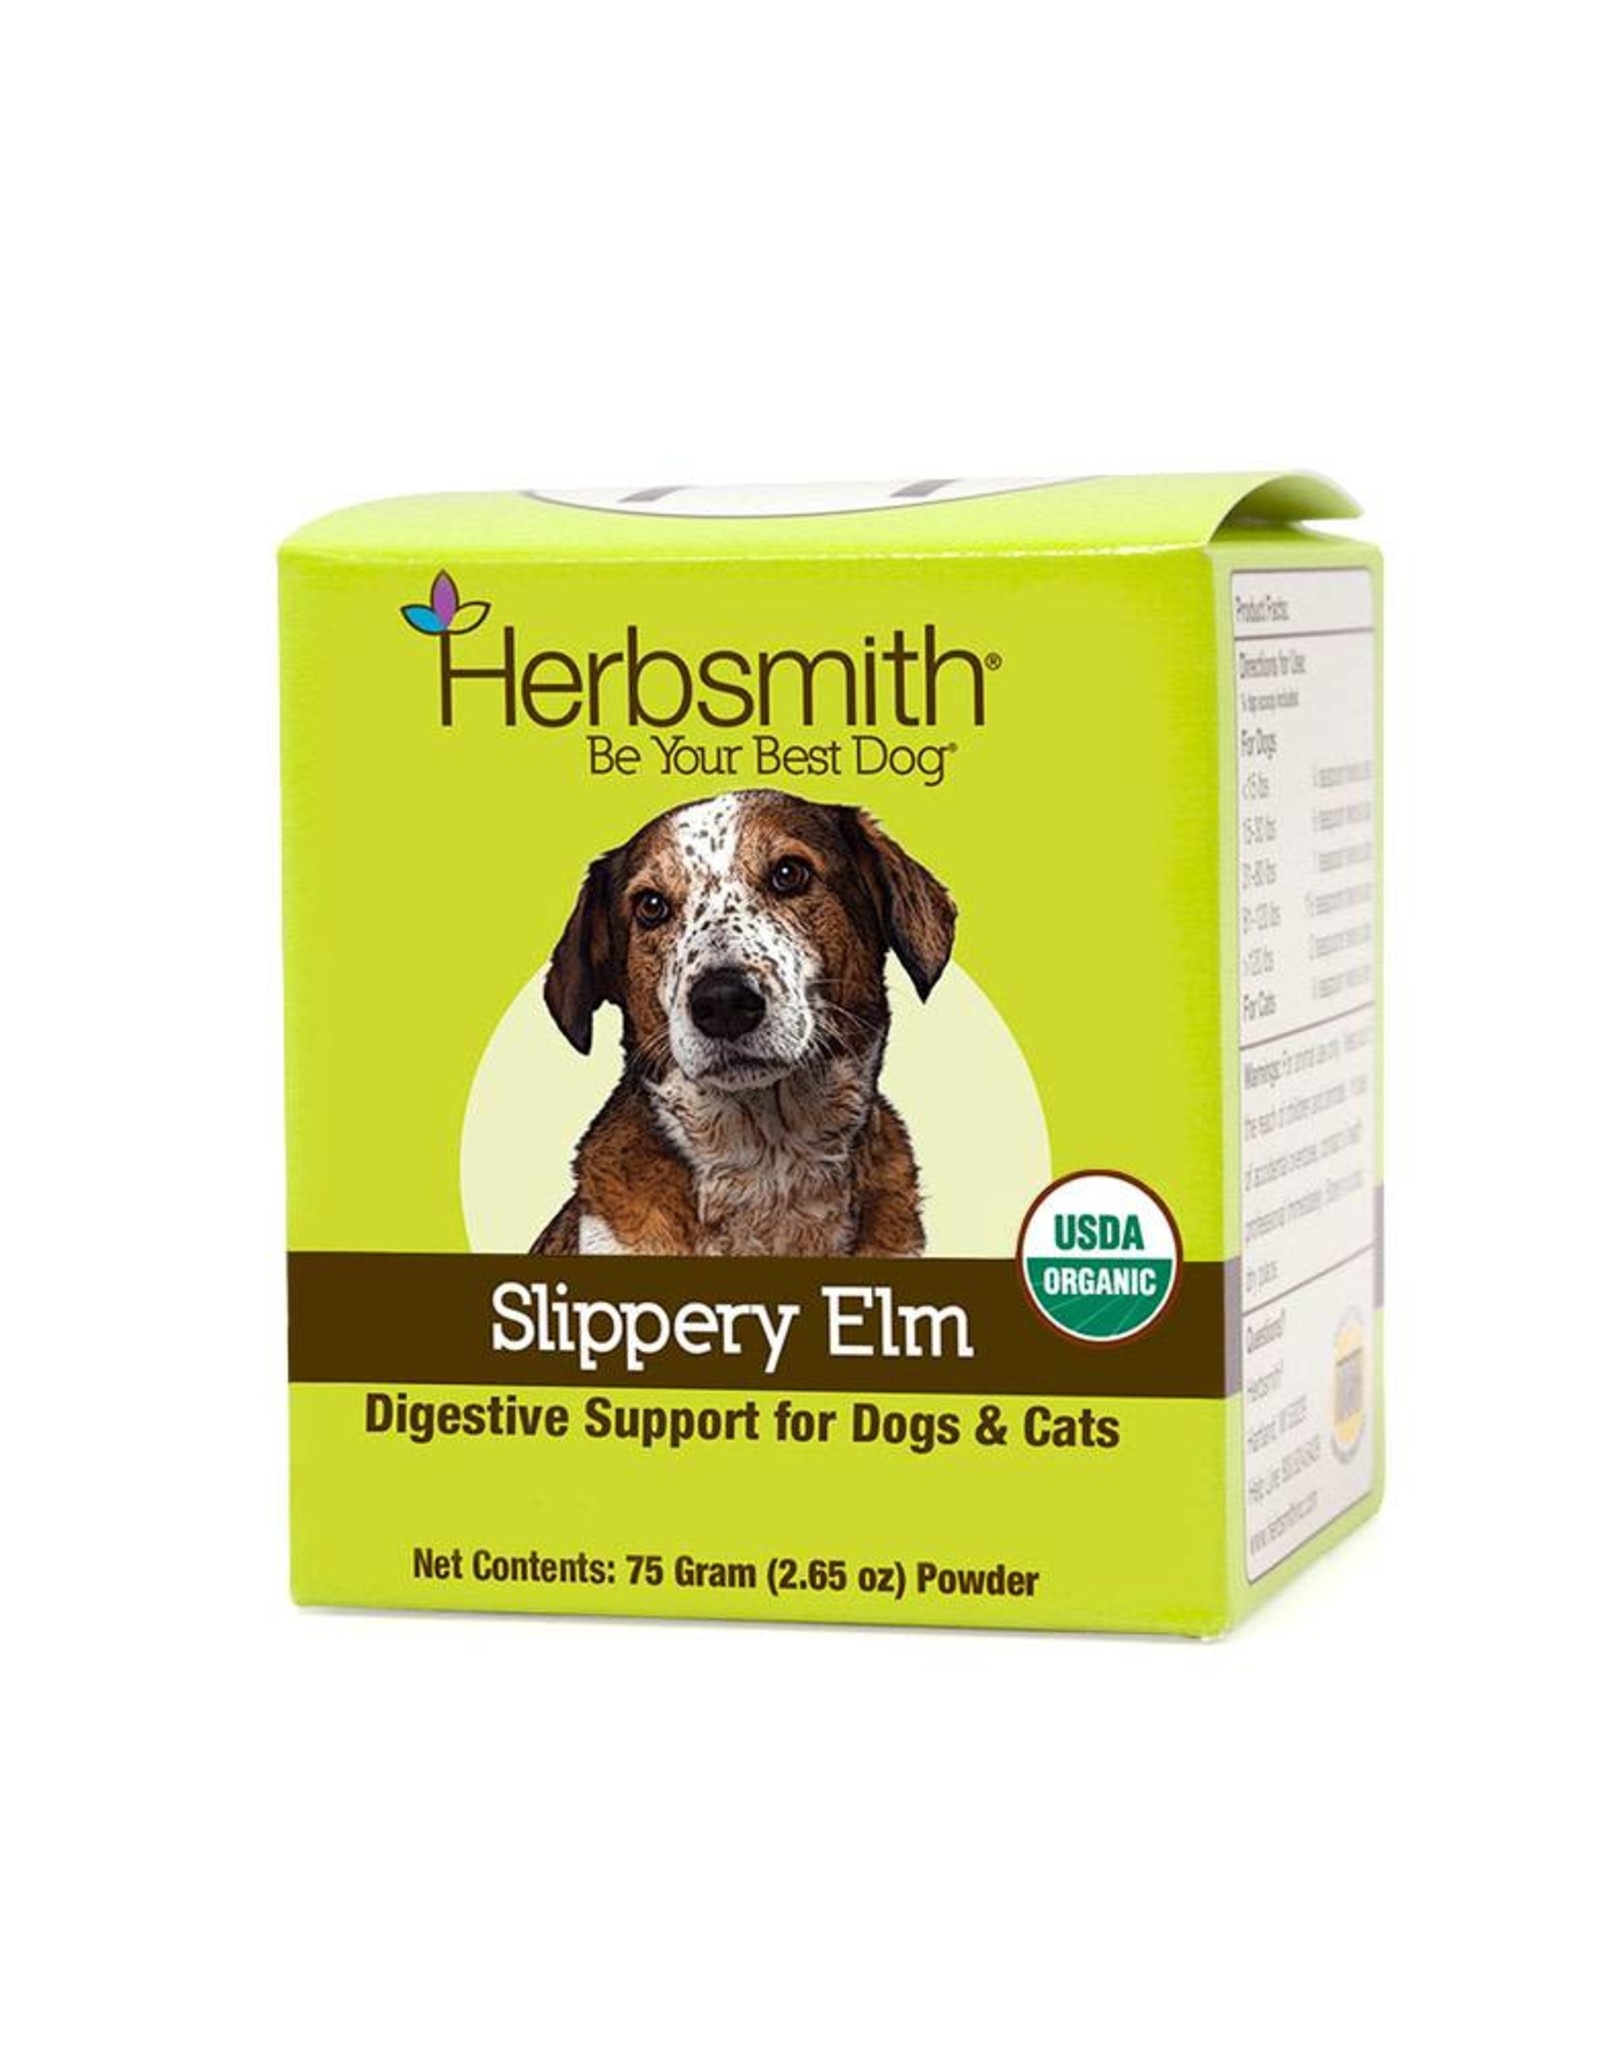 Herbsmith Herbsmith Slippery Elm for Dogs & Cats